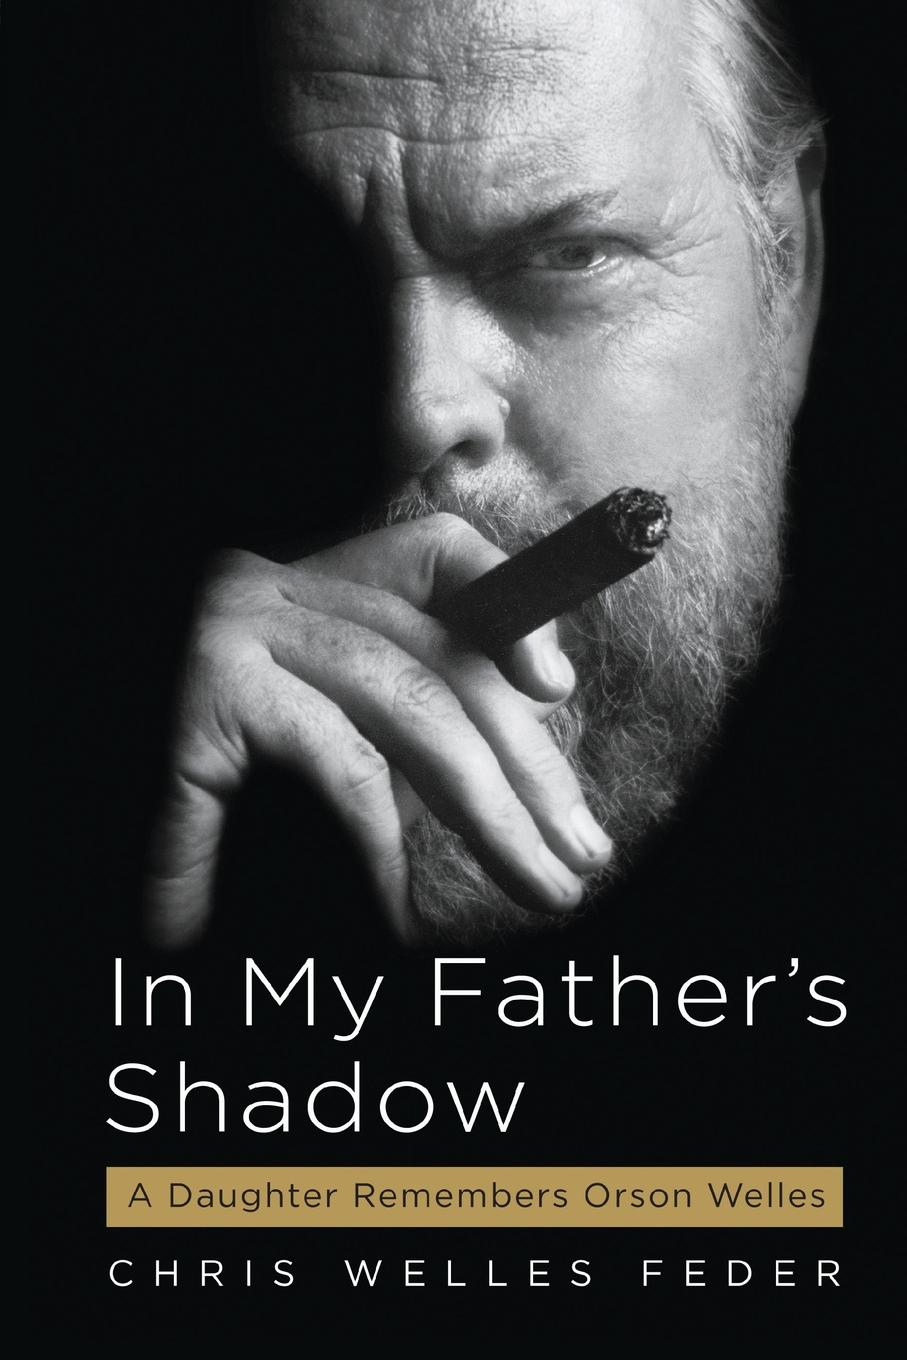 Chris Welles Feder. In My Father.s Shadow. A Daughter Remembers Orson Welles